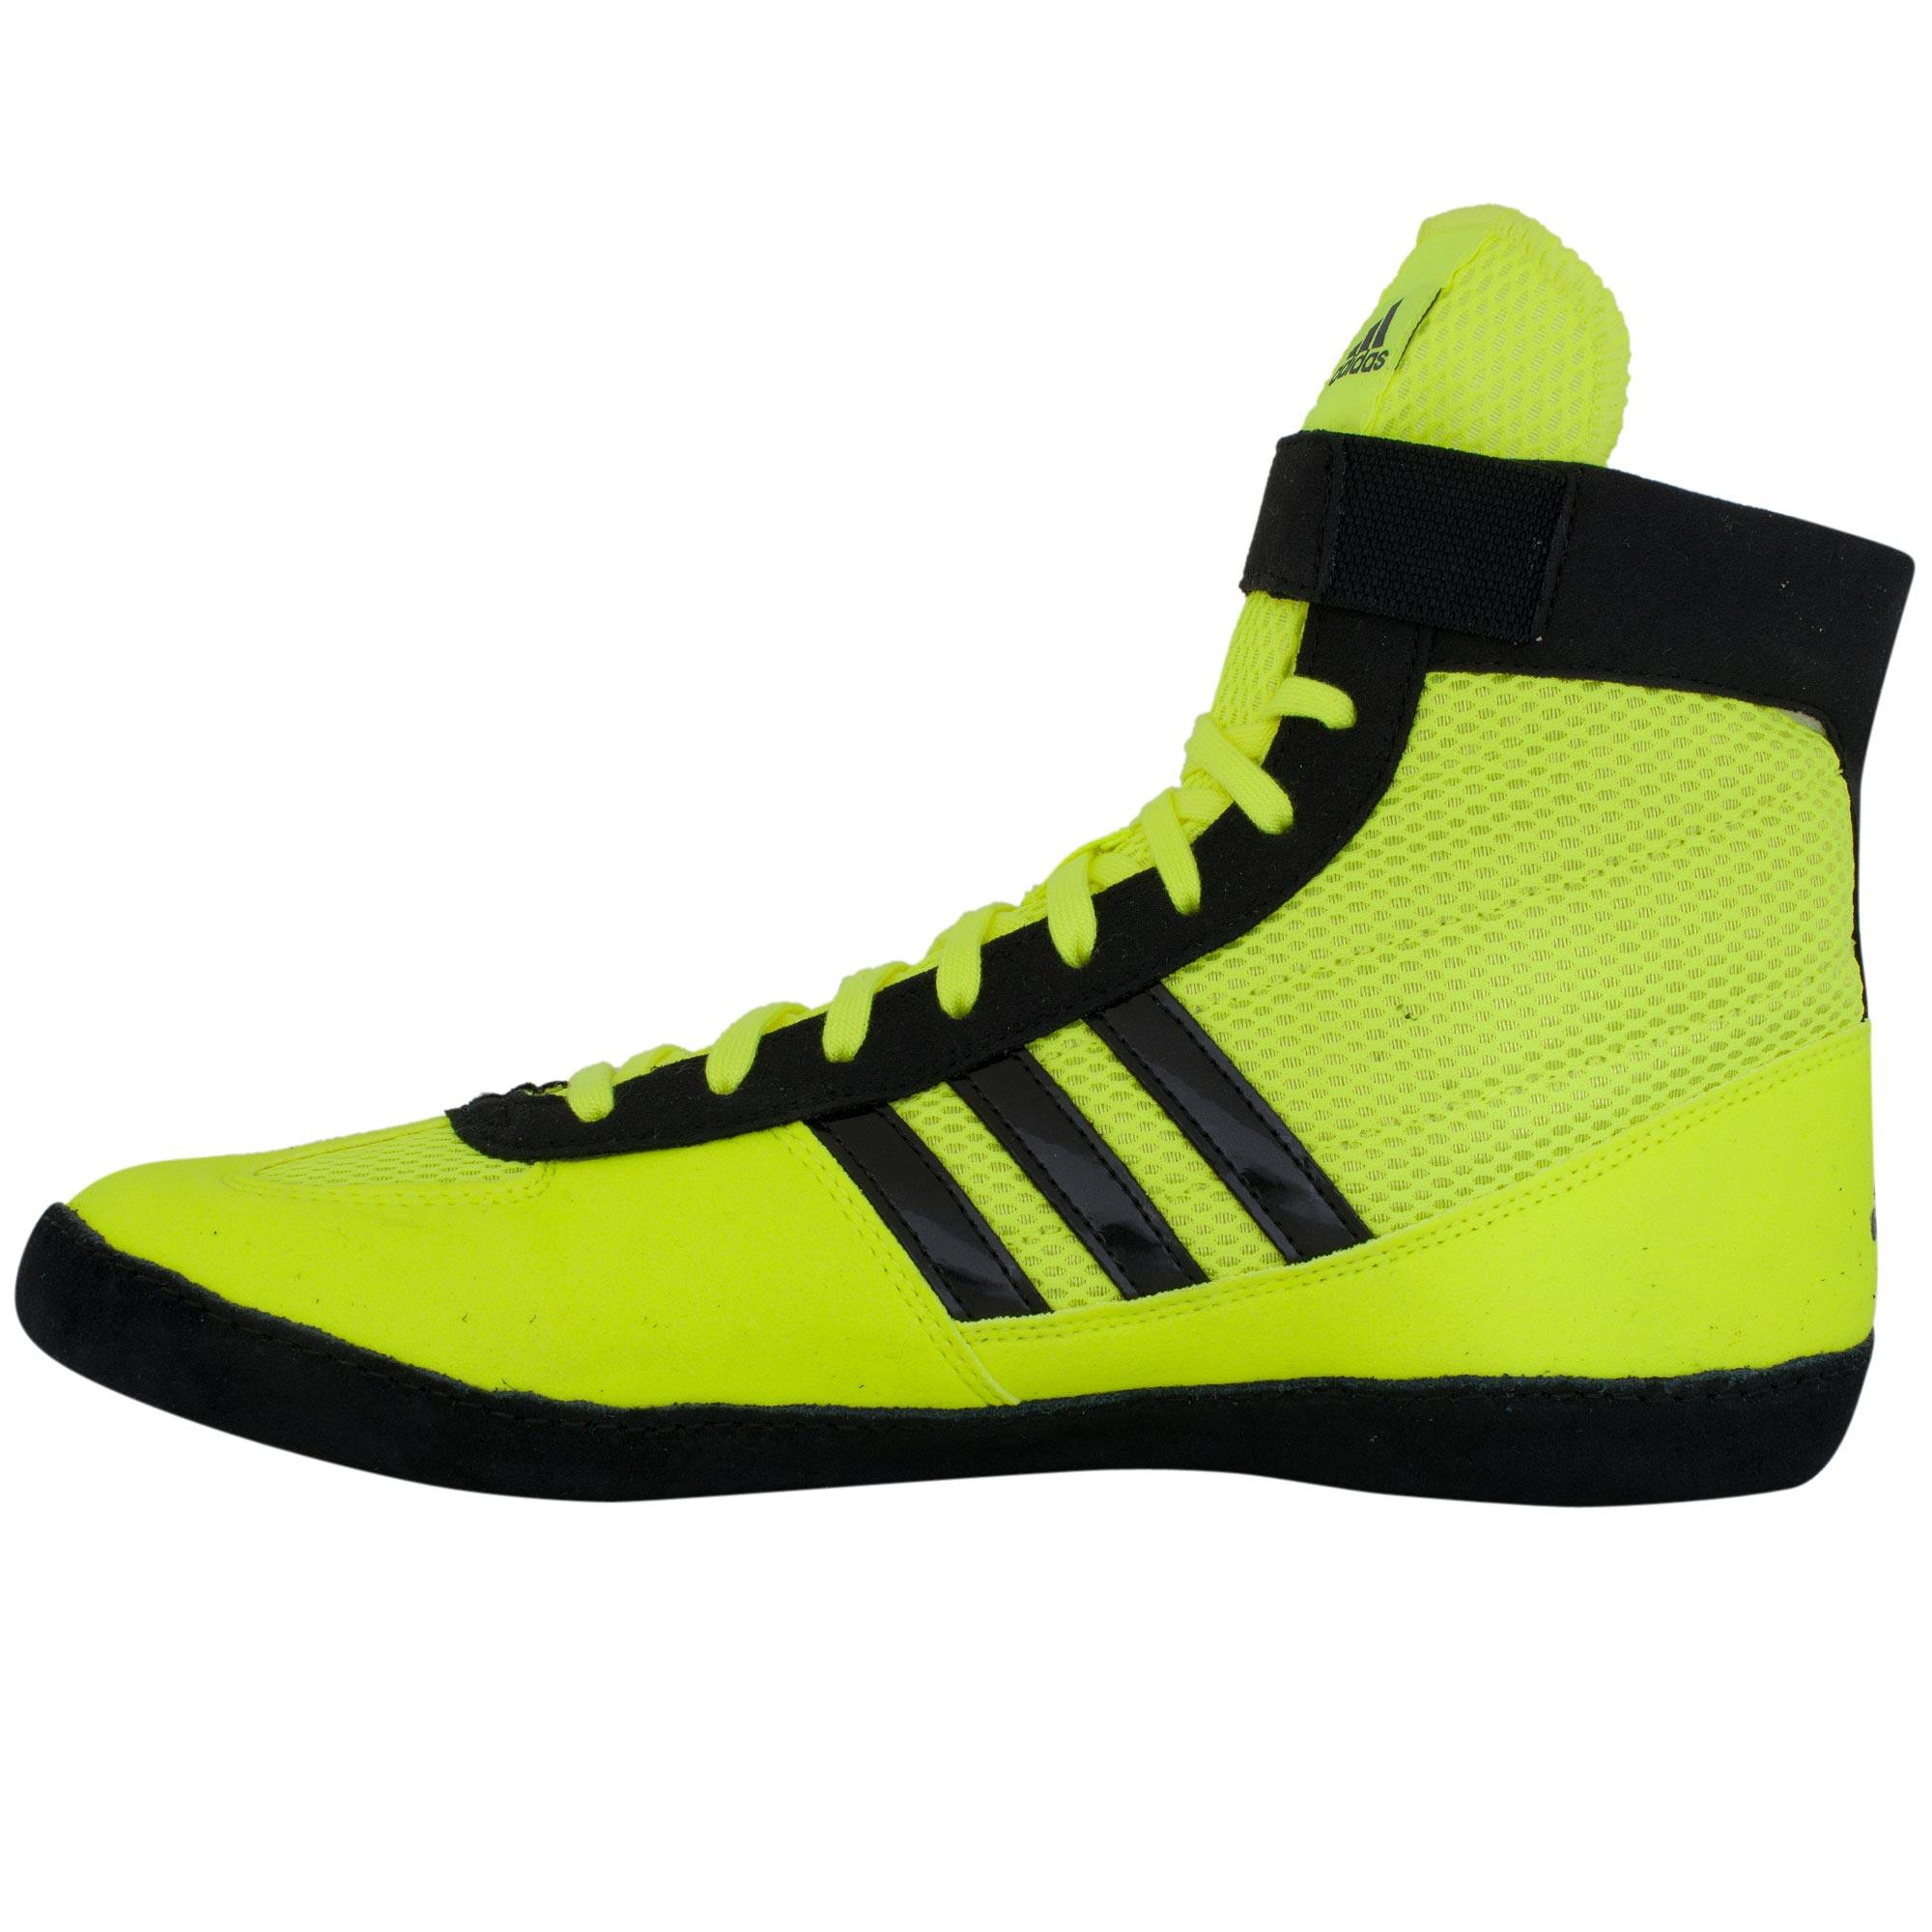 Lime Green Adidas Wrestling Shoes